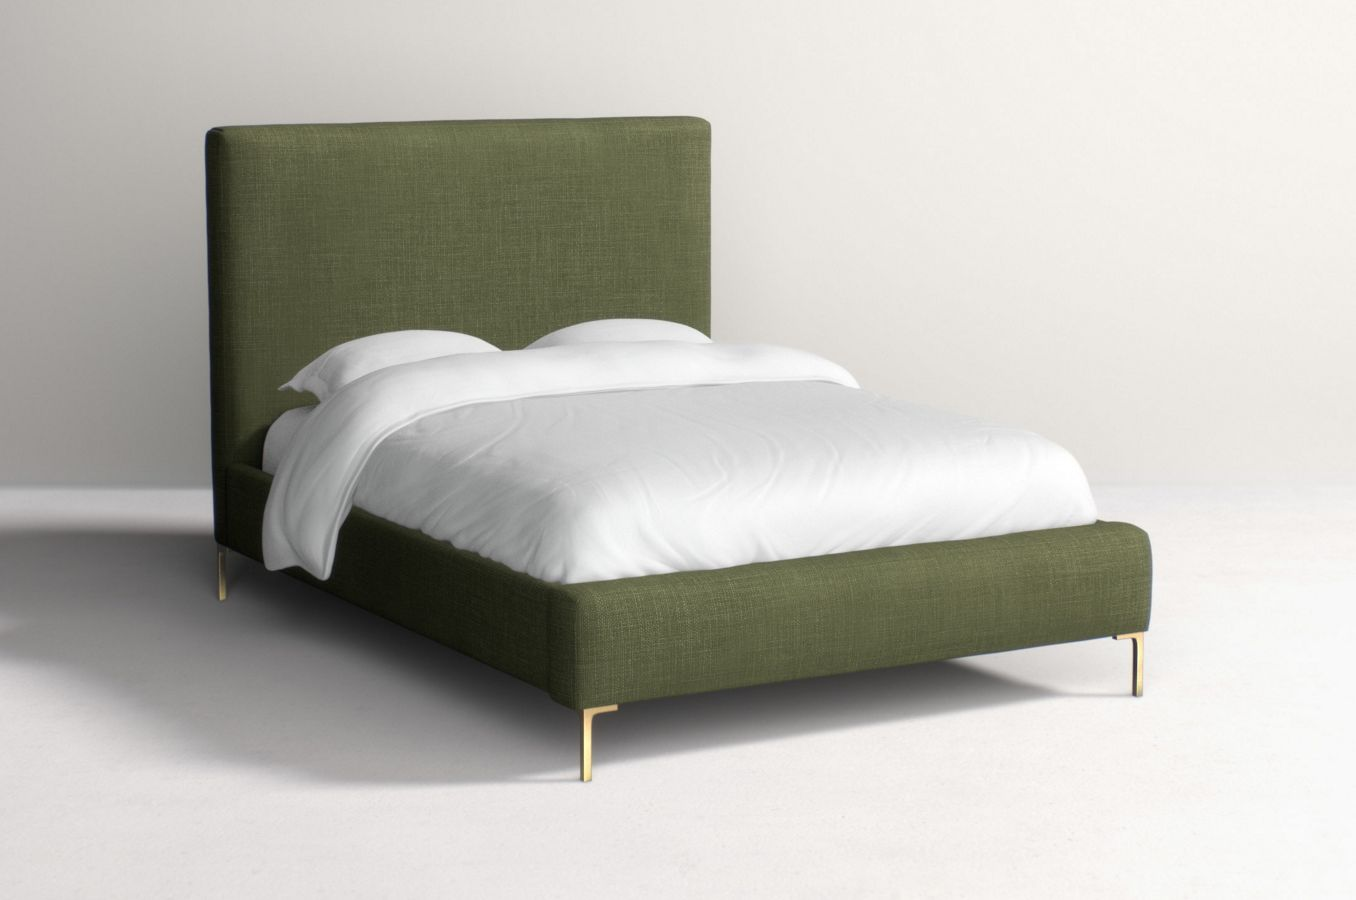 ANTHROPOLOGIE Edlyn Bed Starting at $1,798.00